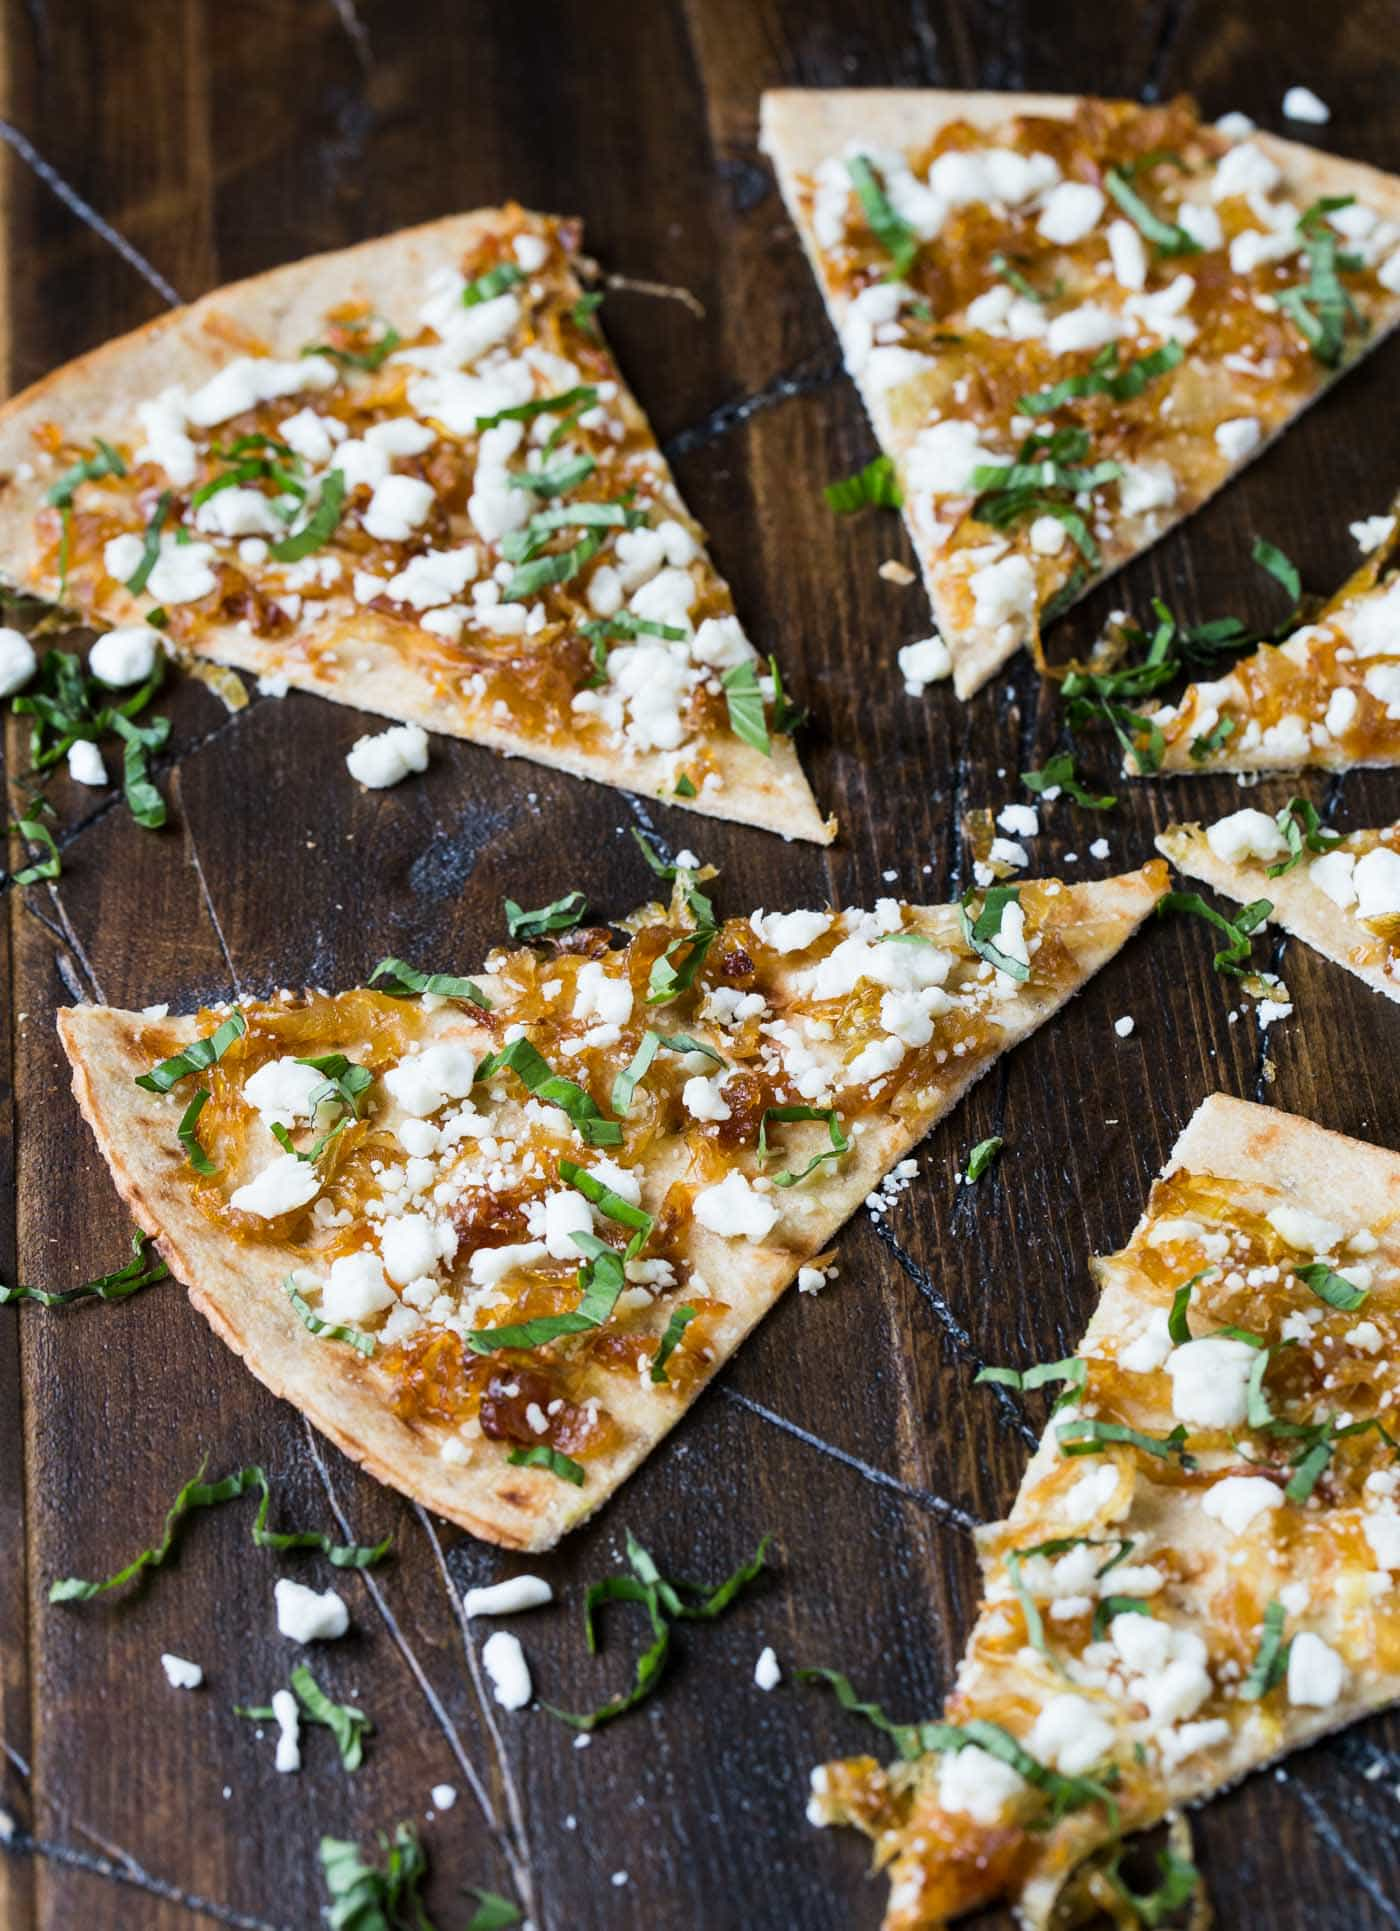 Slices of Flatbread with Goat Cheese and Caramelized Onions on a wooden board.